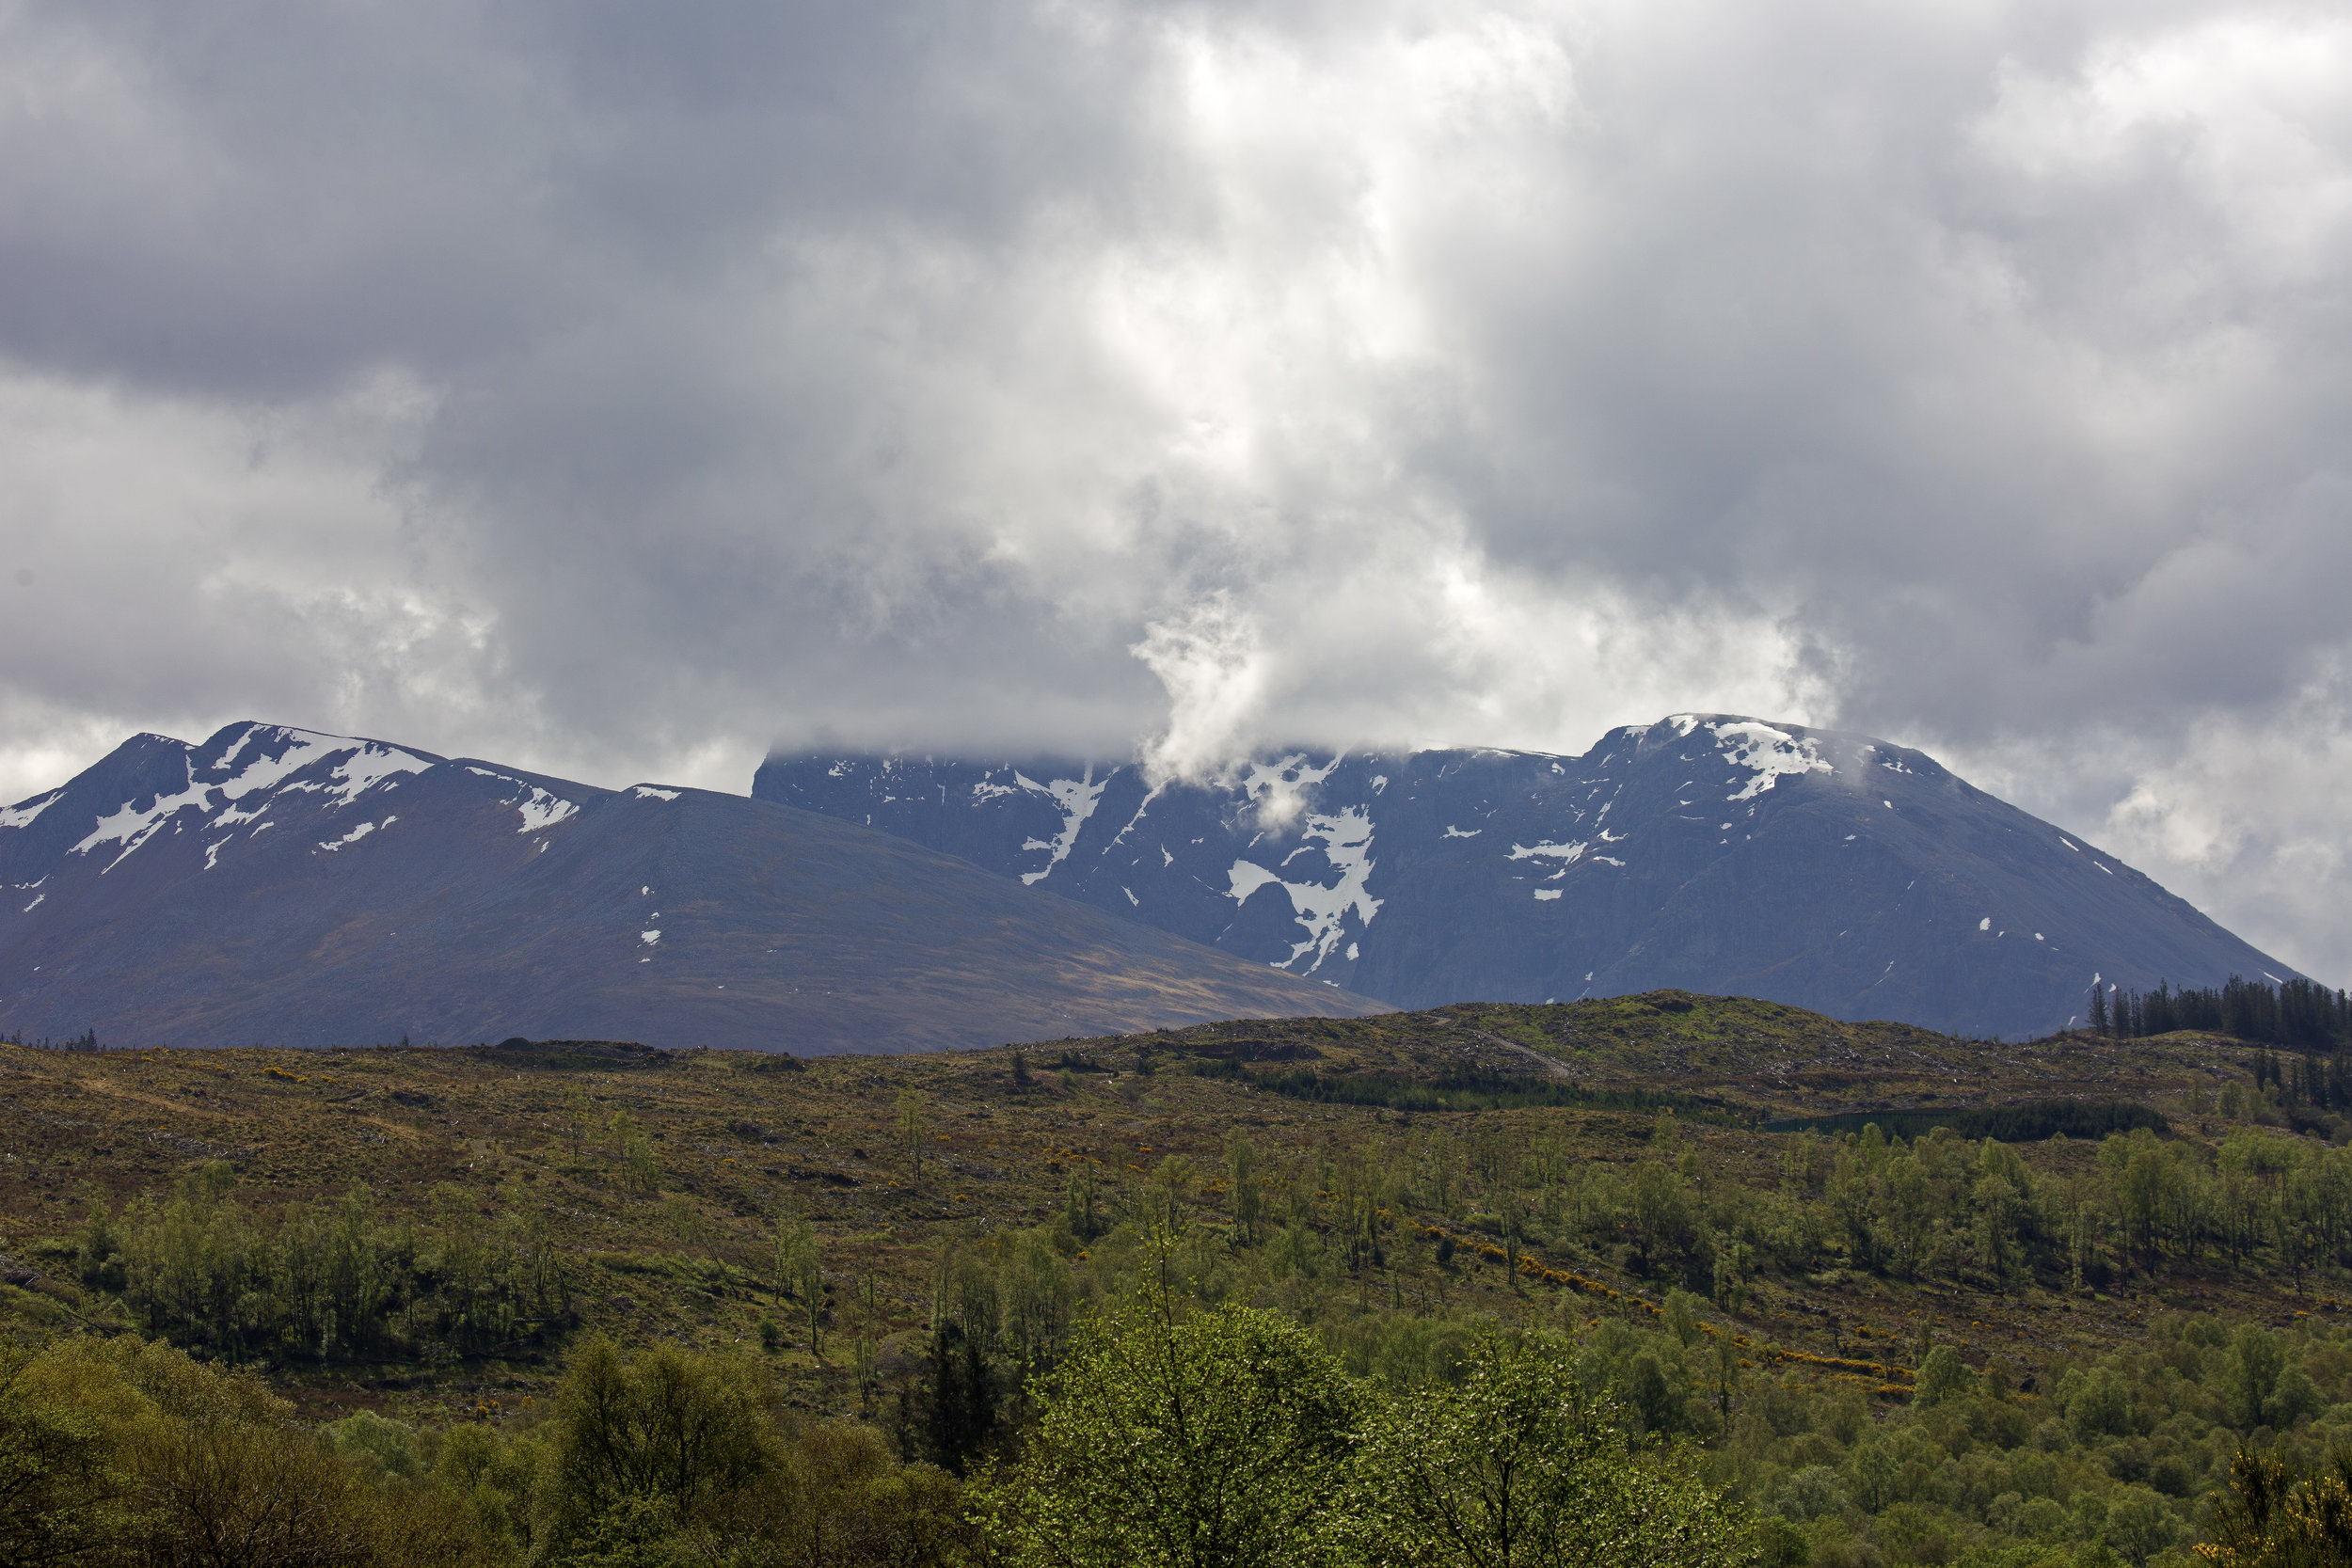 Our first glimpse of Ben Nevis, the highest mountain in Britain.